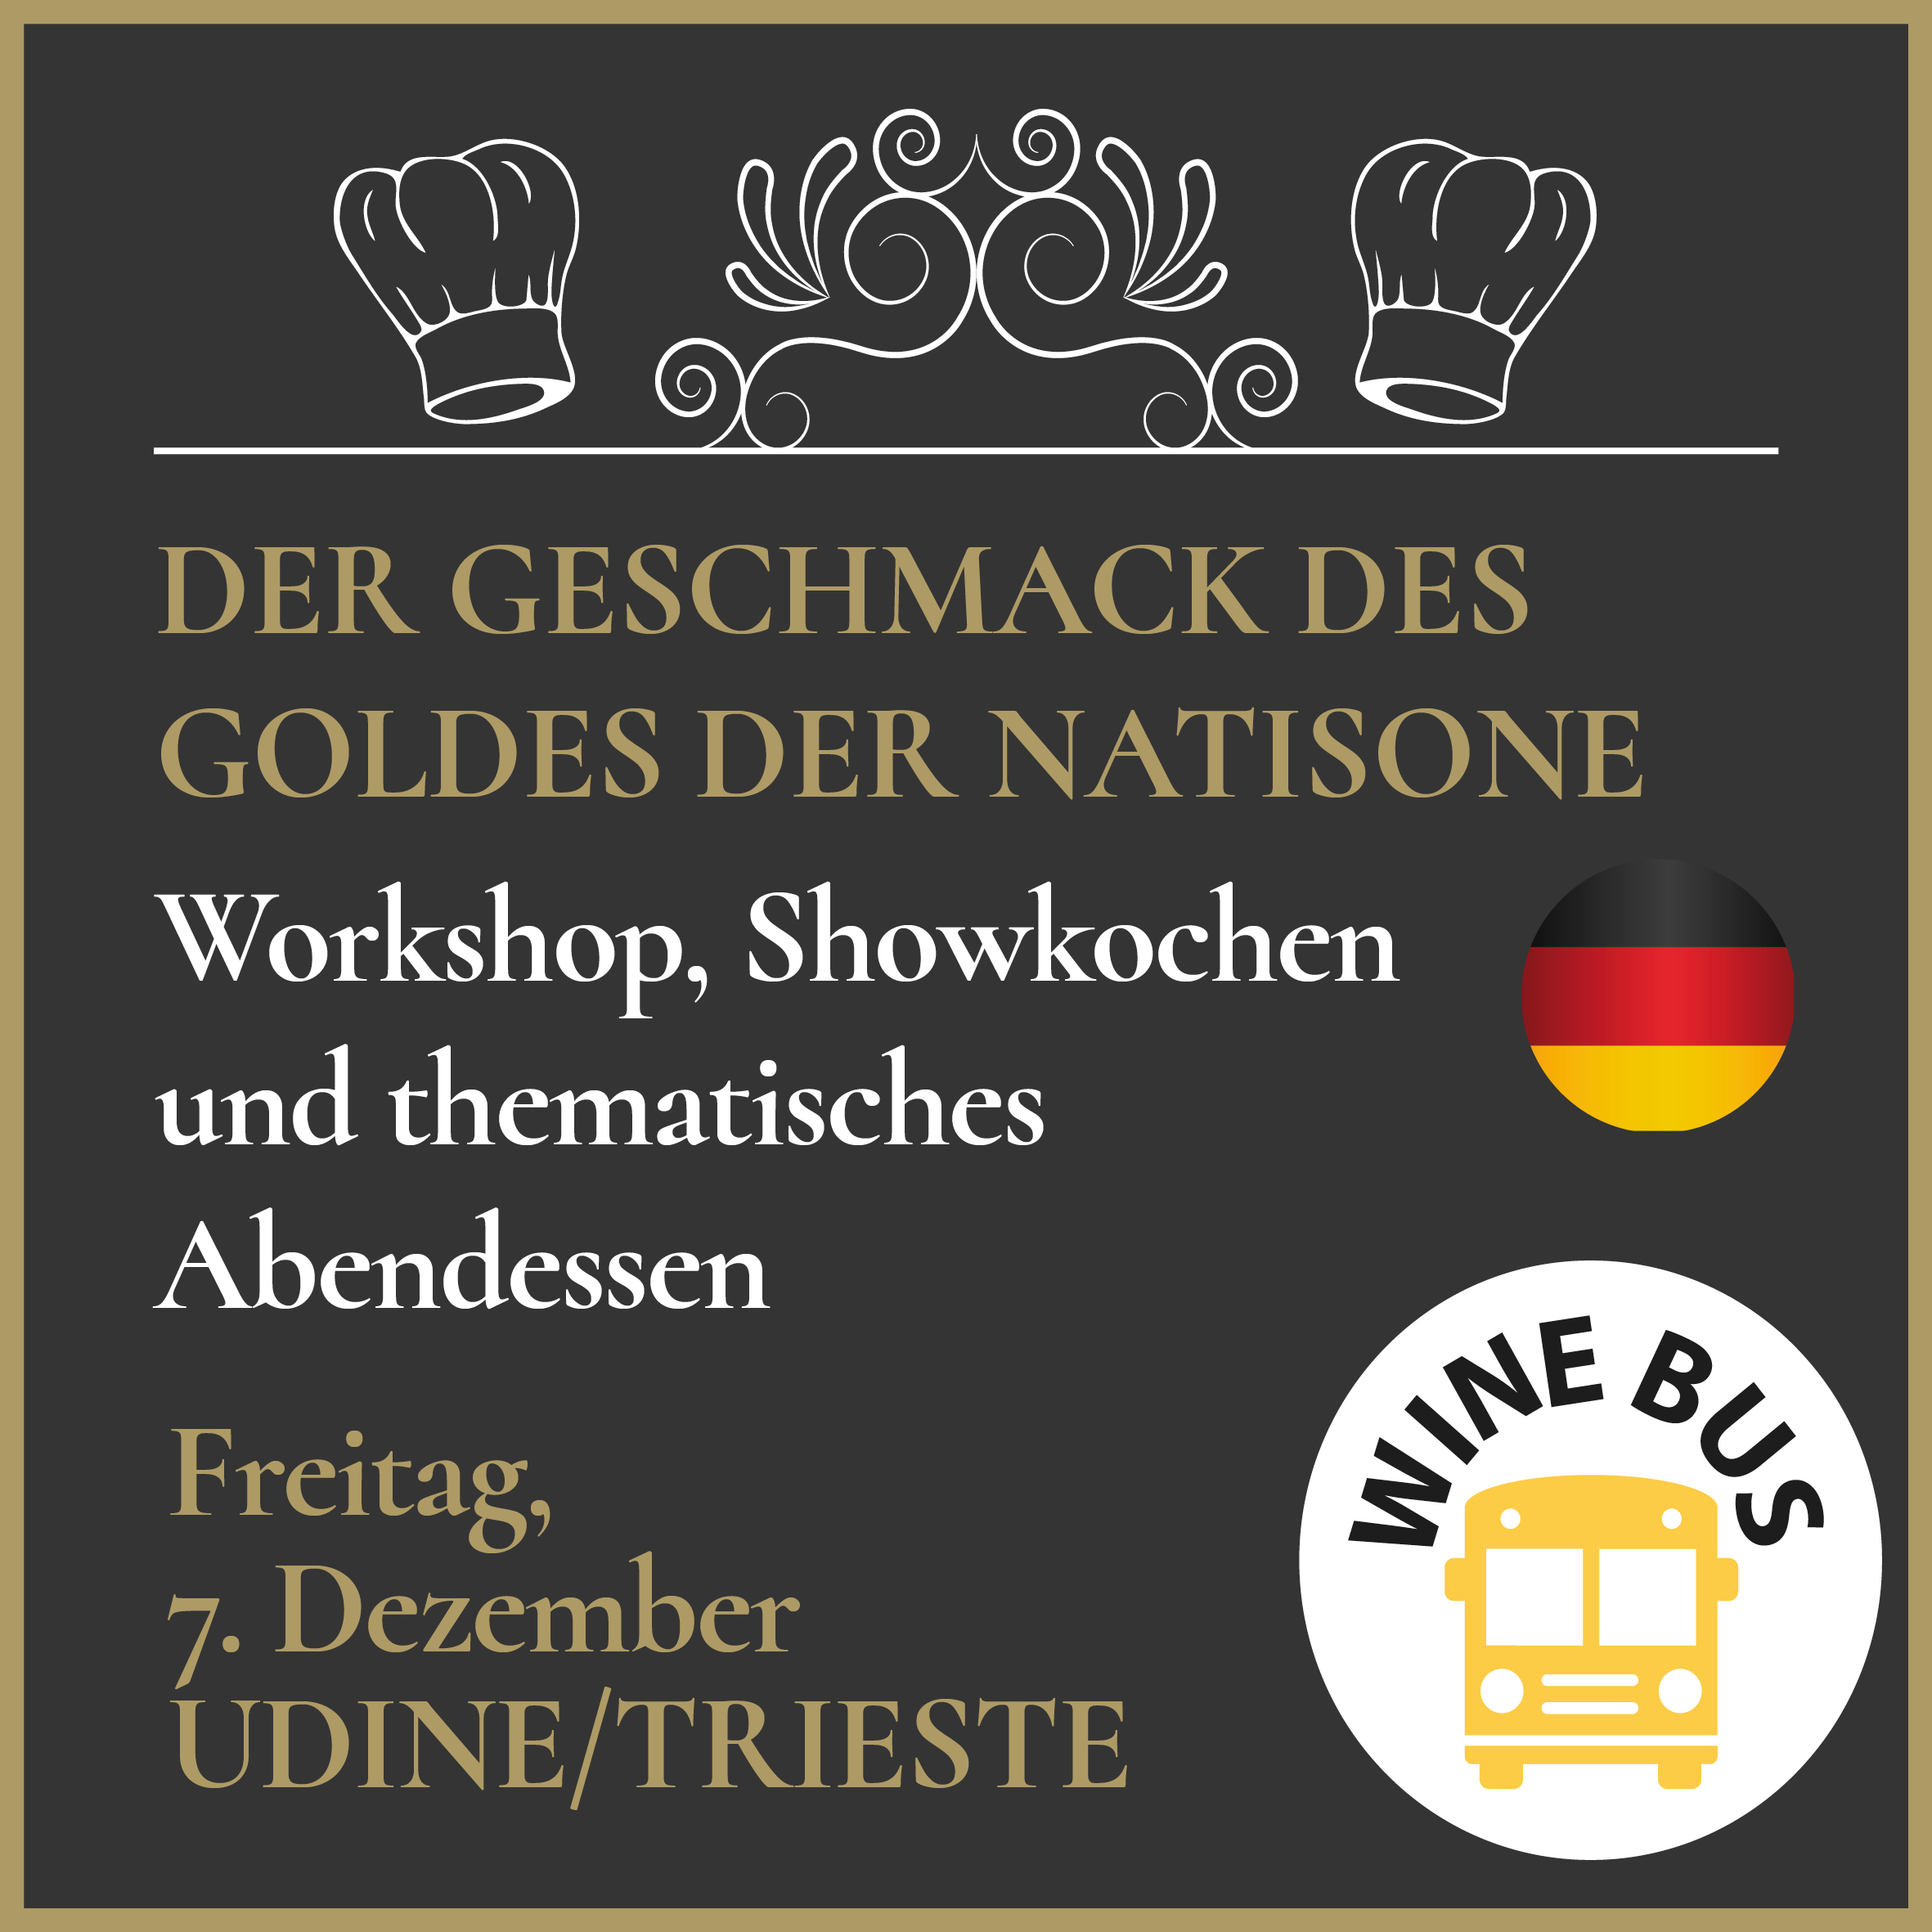 Wine Bus - Natisone Gold